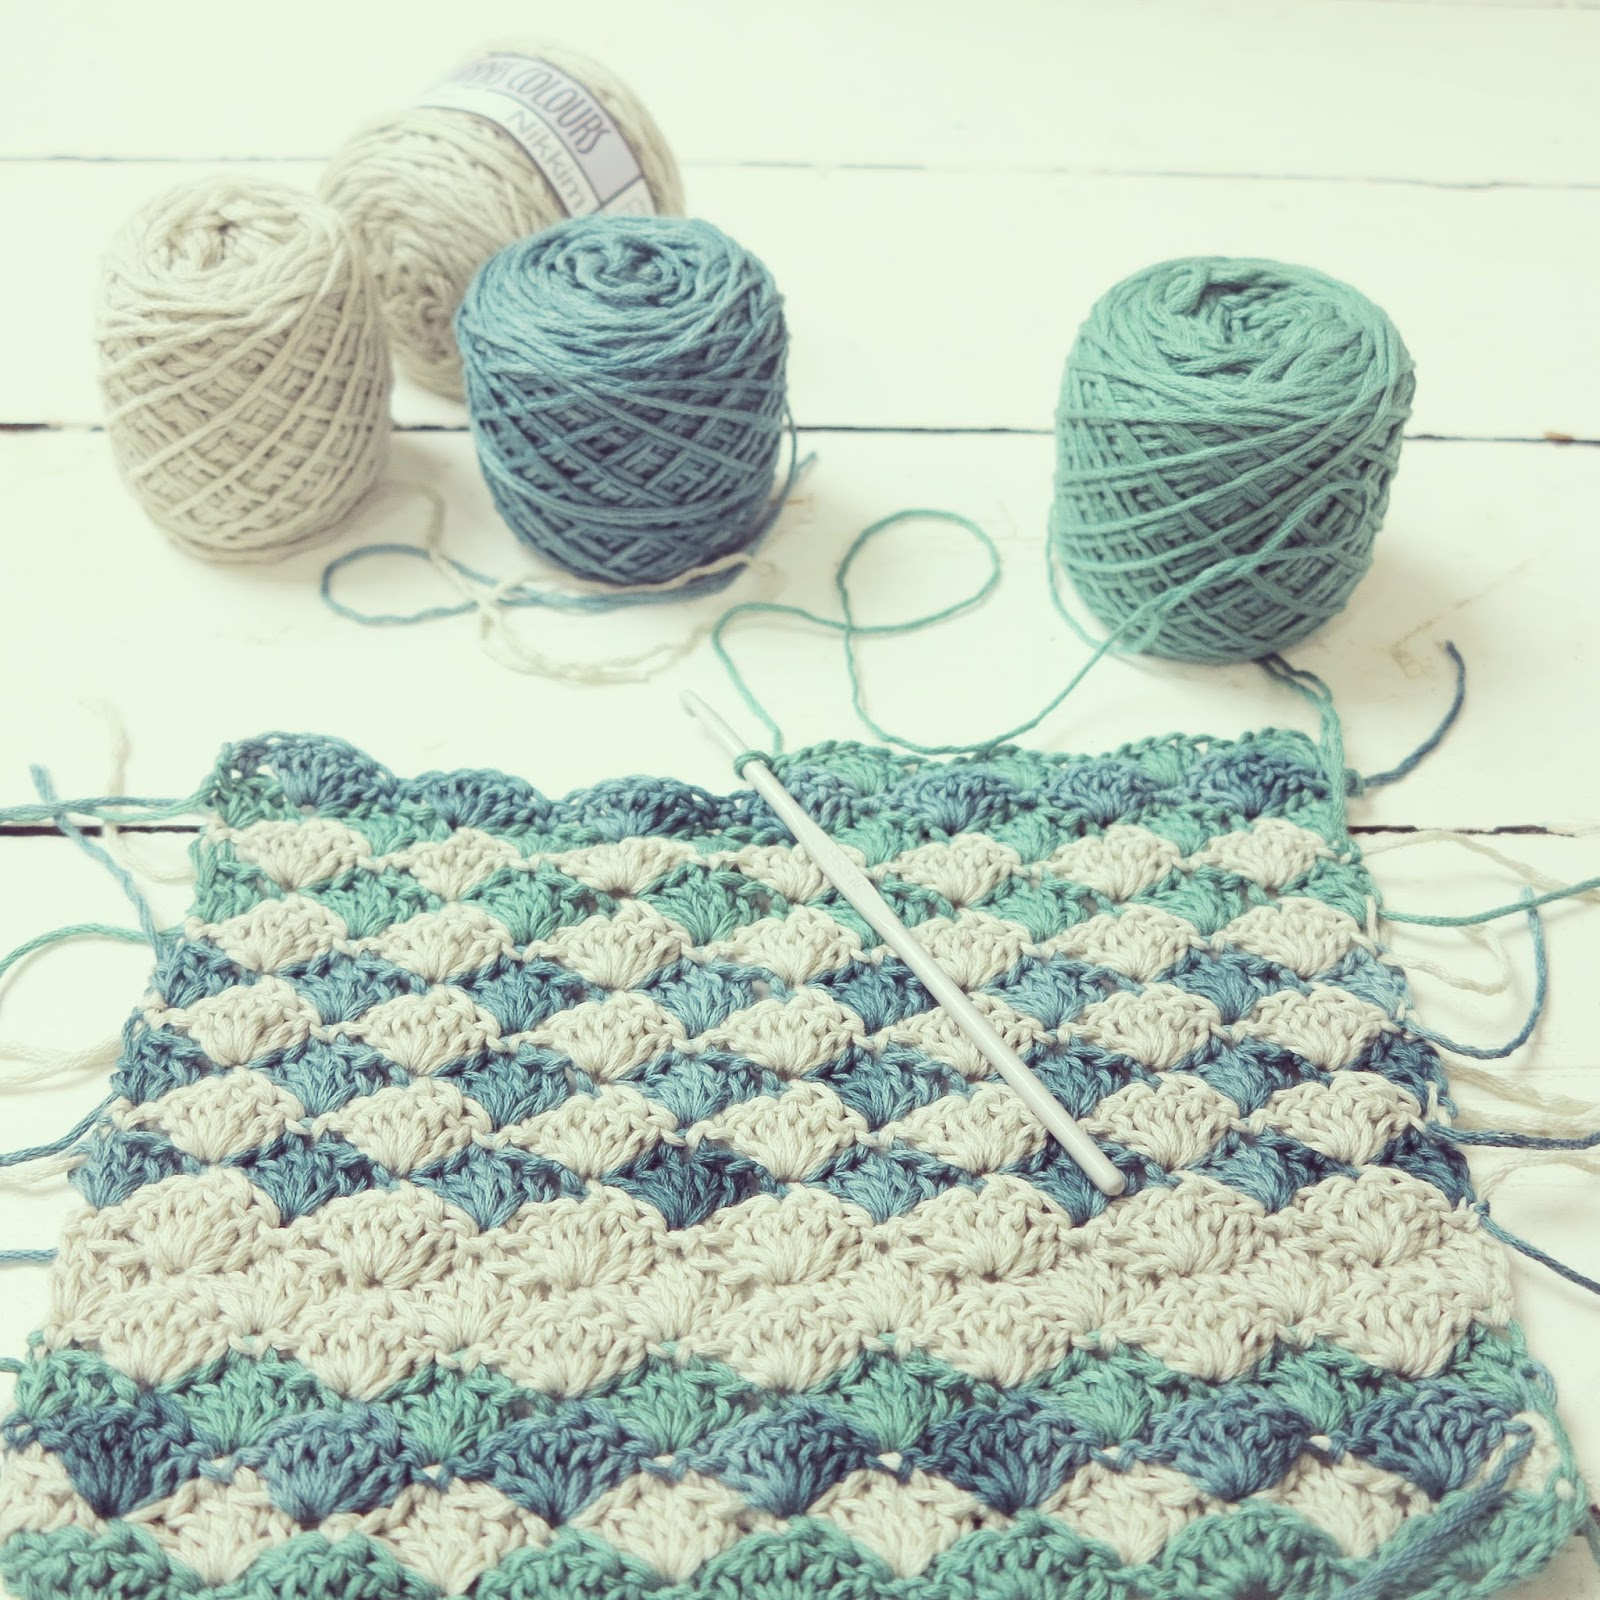 Free Crochet Patterns In South Africa : ByHaafner * crochet : Lots of Yarny Goodness from South Africa